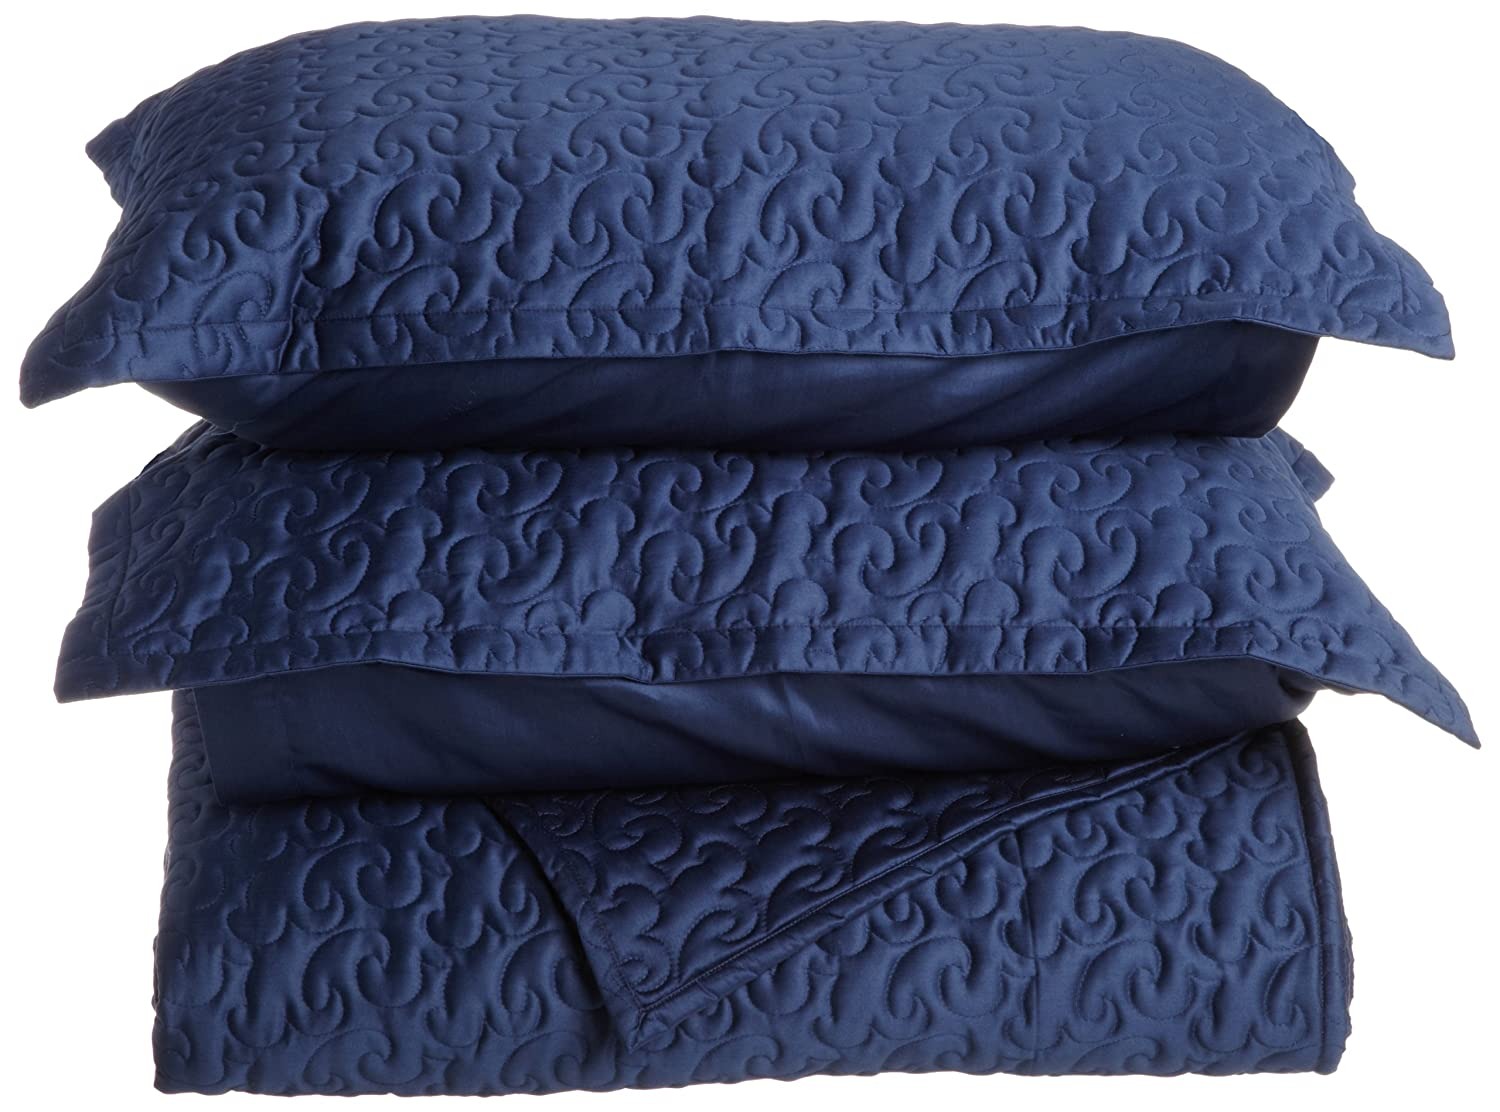 Amazon.com: Tuscany Fine Italian Linens Egyptian Cotton Quilted Coverlet  Set, King, Navy Blue: Home U0026 Kitchen